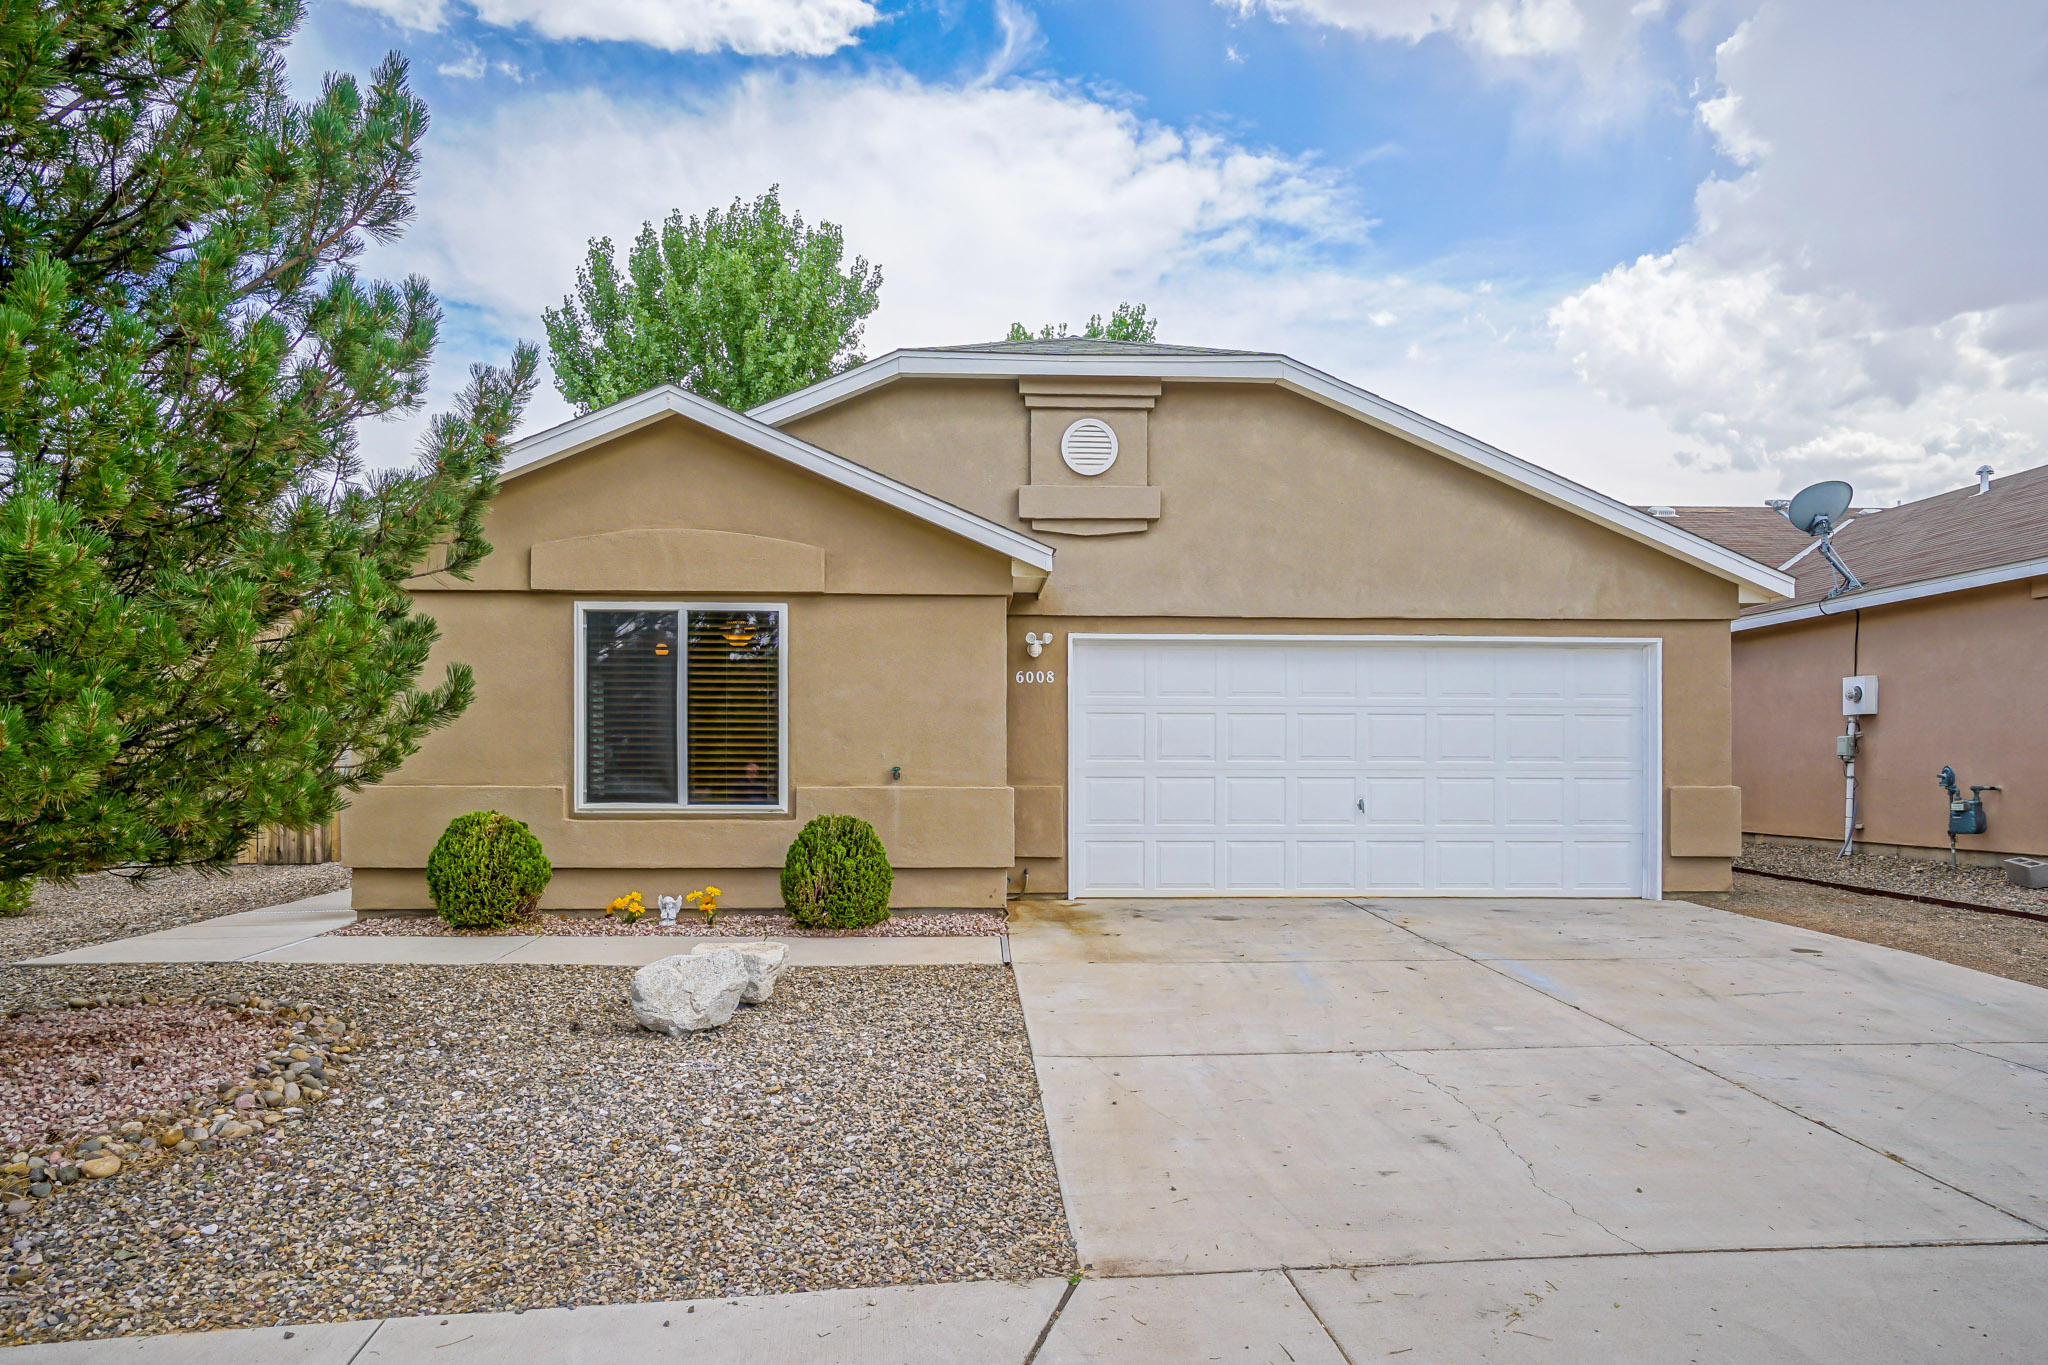 Northwest Albuquerque and Northwest Heights Homes for Sale -  Single Story,  6008 NW Murcia Avenue